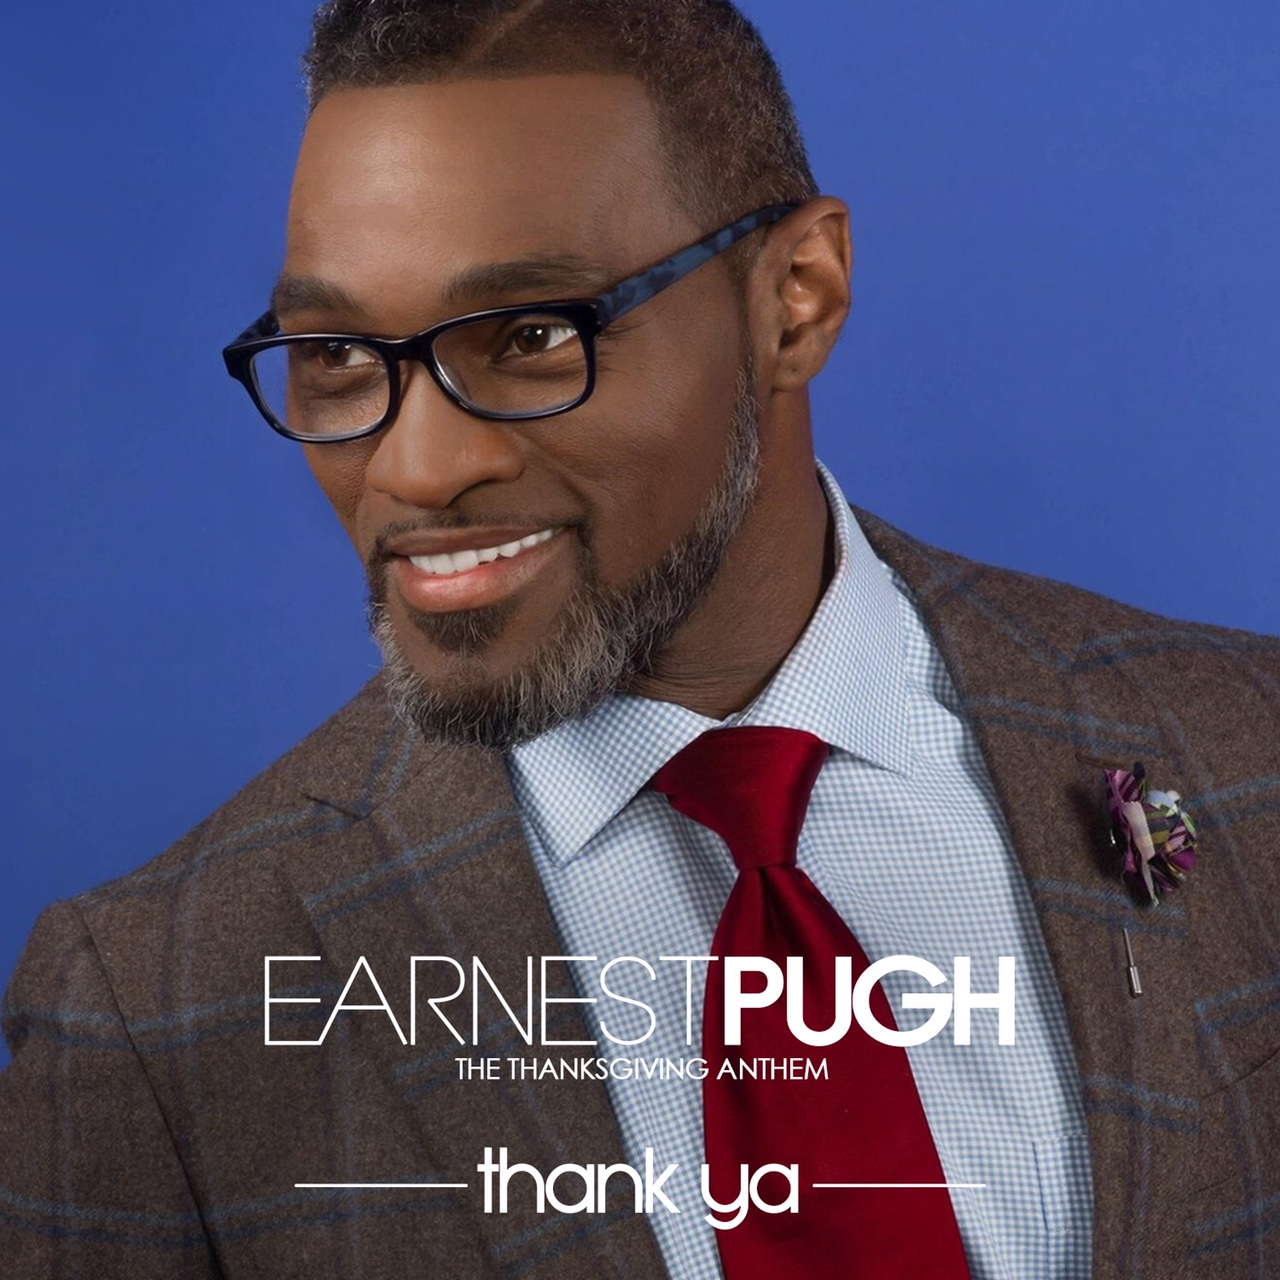 Earnest Pugh releases new single just in time for holiday season